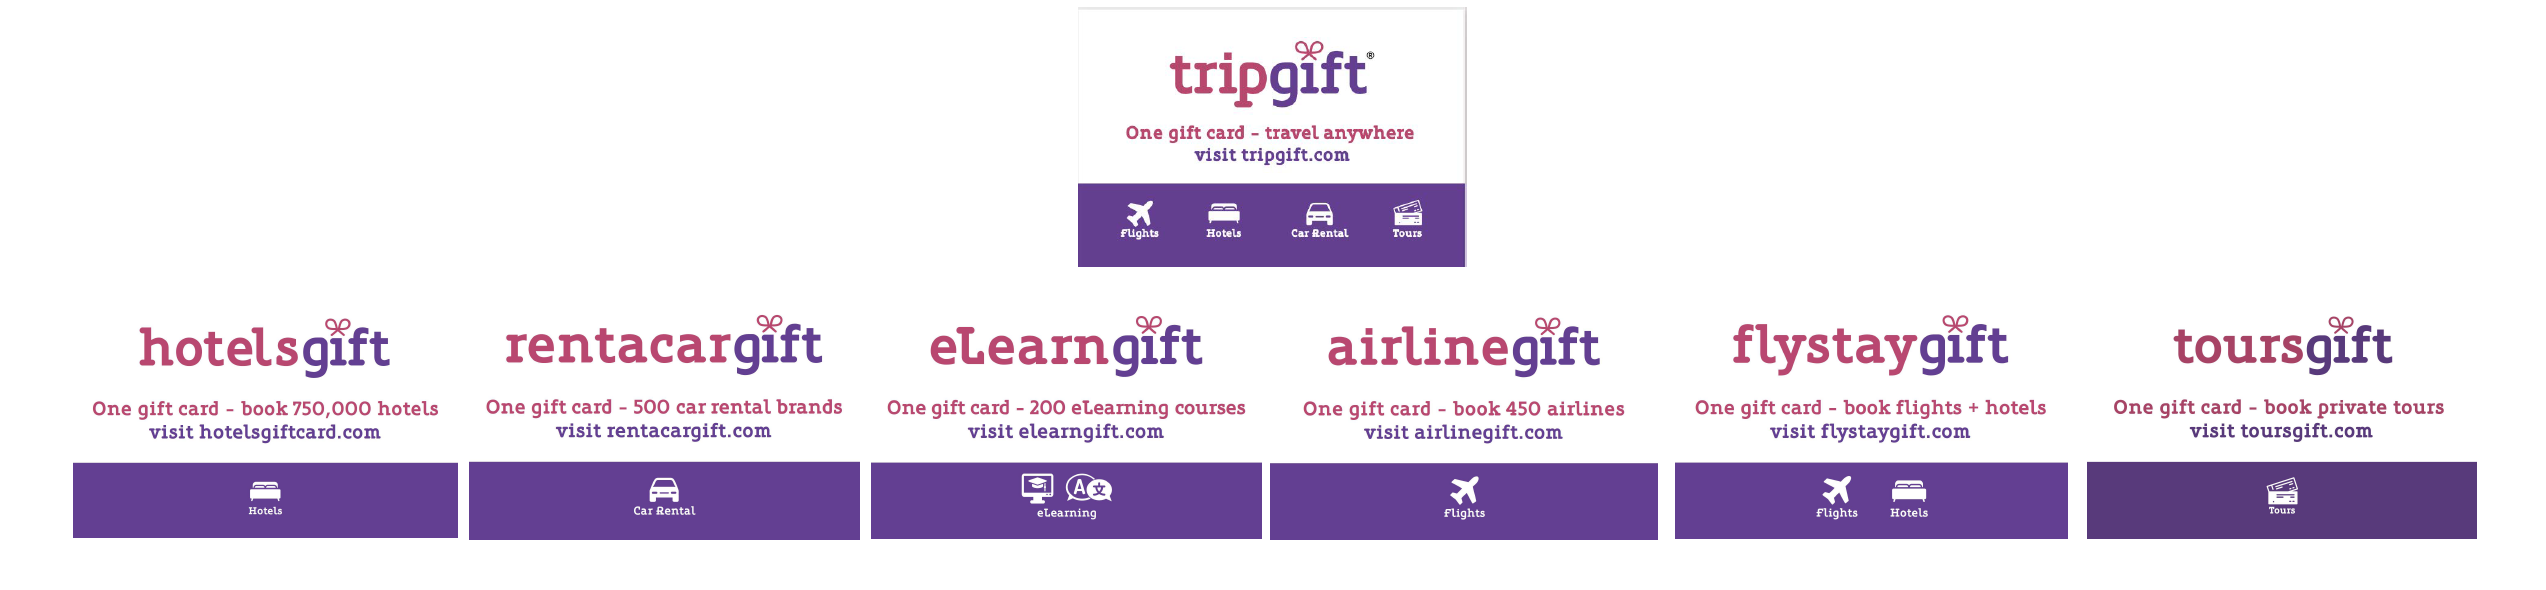 TripGift brands portfolio